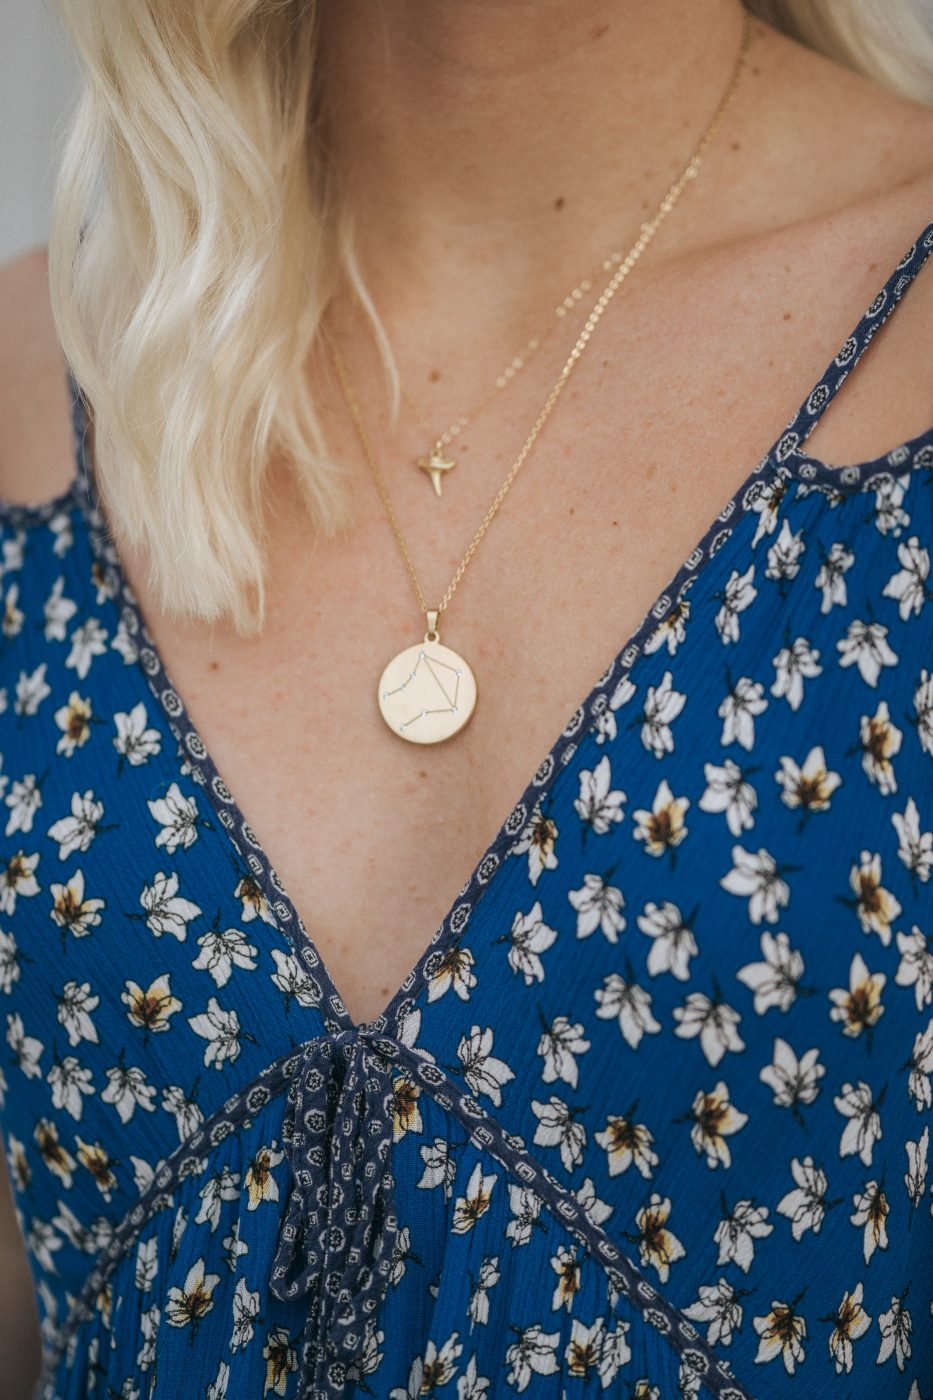 summer dress with layered gold necklaces